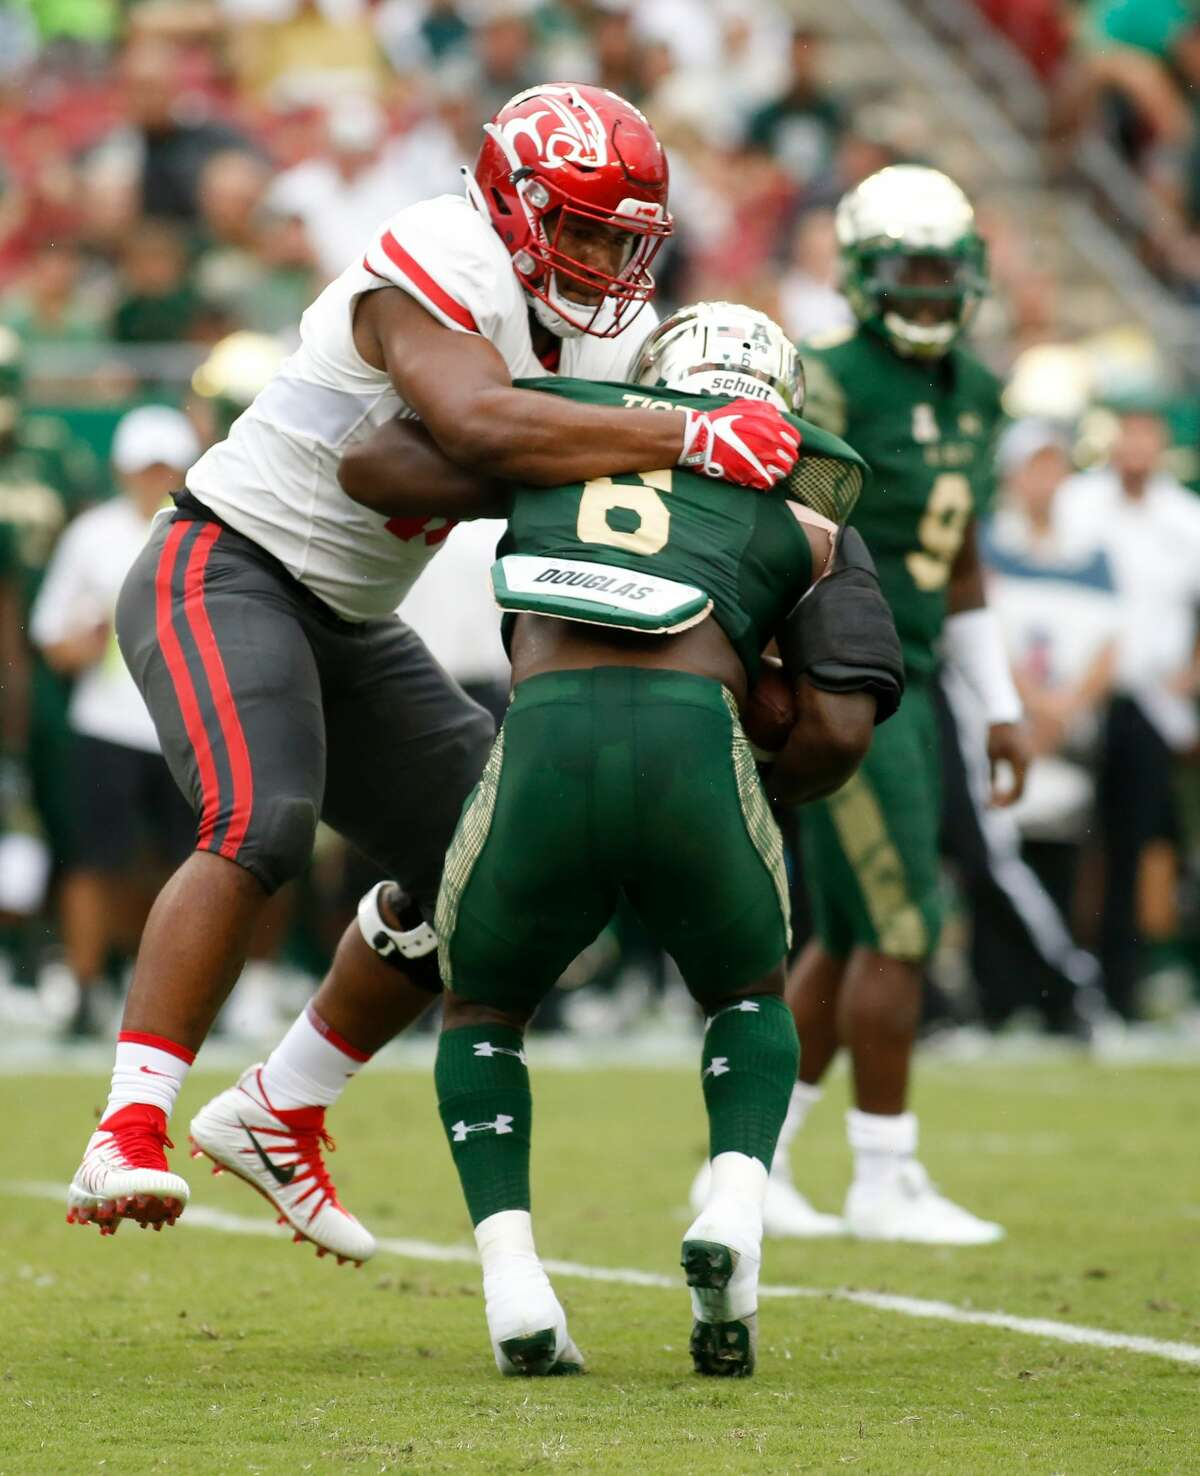 TAMPA, FL - OCTOBER 28: Defensive tackle Ed Oliver #10 of the Houston Cougars tackles running back Darius Tice #6 of the South Florida Bulls during the first quarter of an NCAA football game on October 28, 2017 at Raymond James Stadium in Tampa, Florida. (Photo by Brian Blanco/Getty Images)